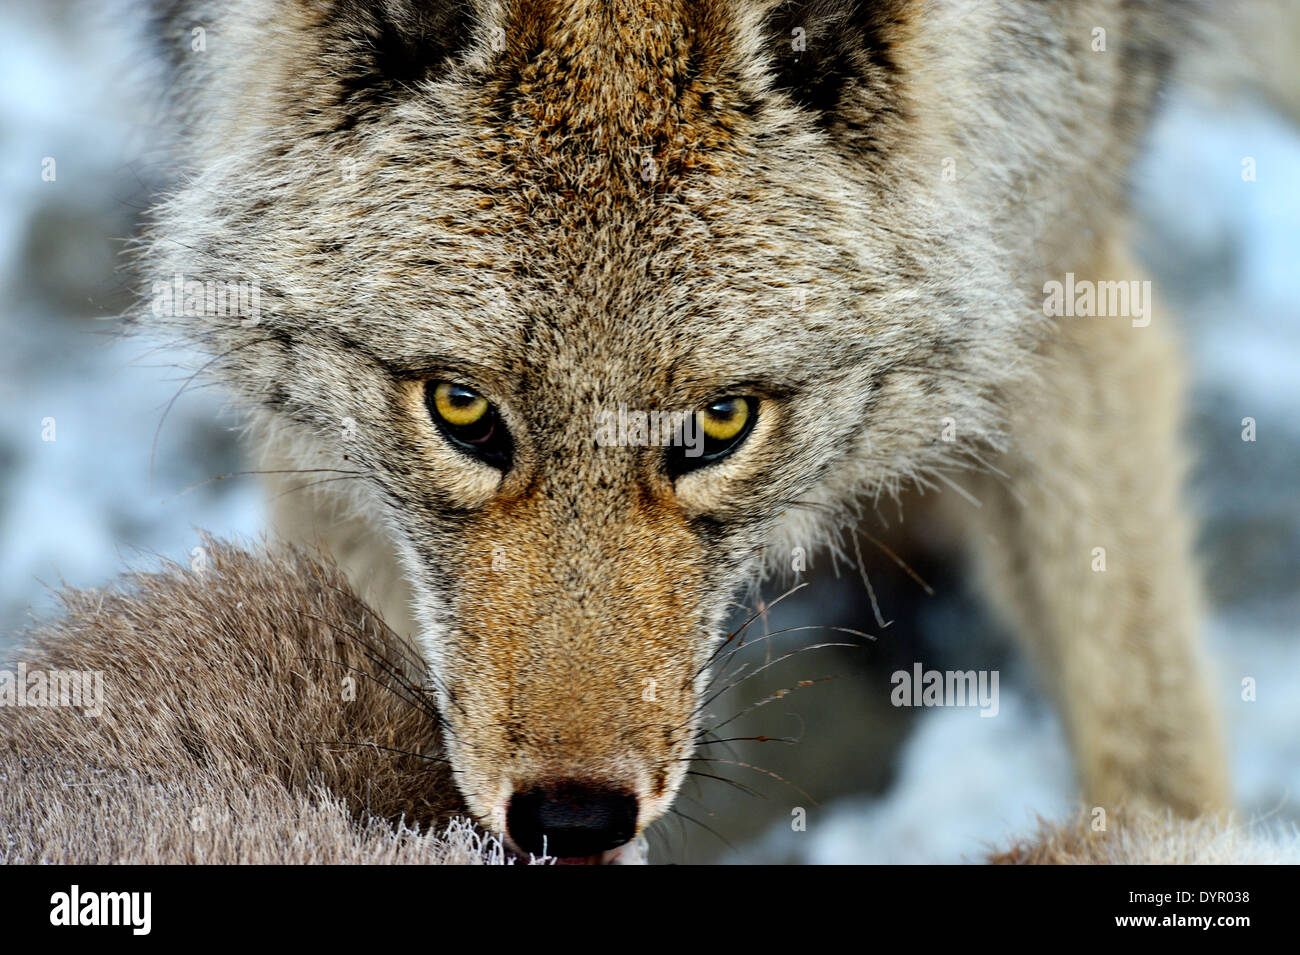 A close up image of a wild coyote looking up from a baby sheep that he has just killed Stock Photo